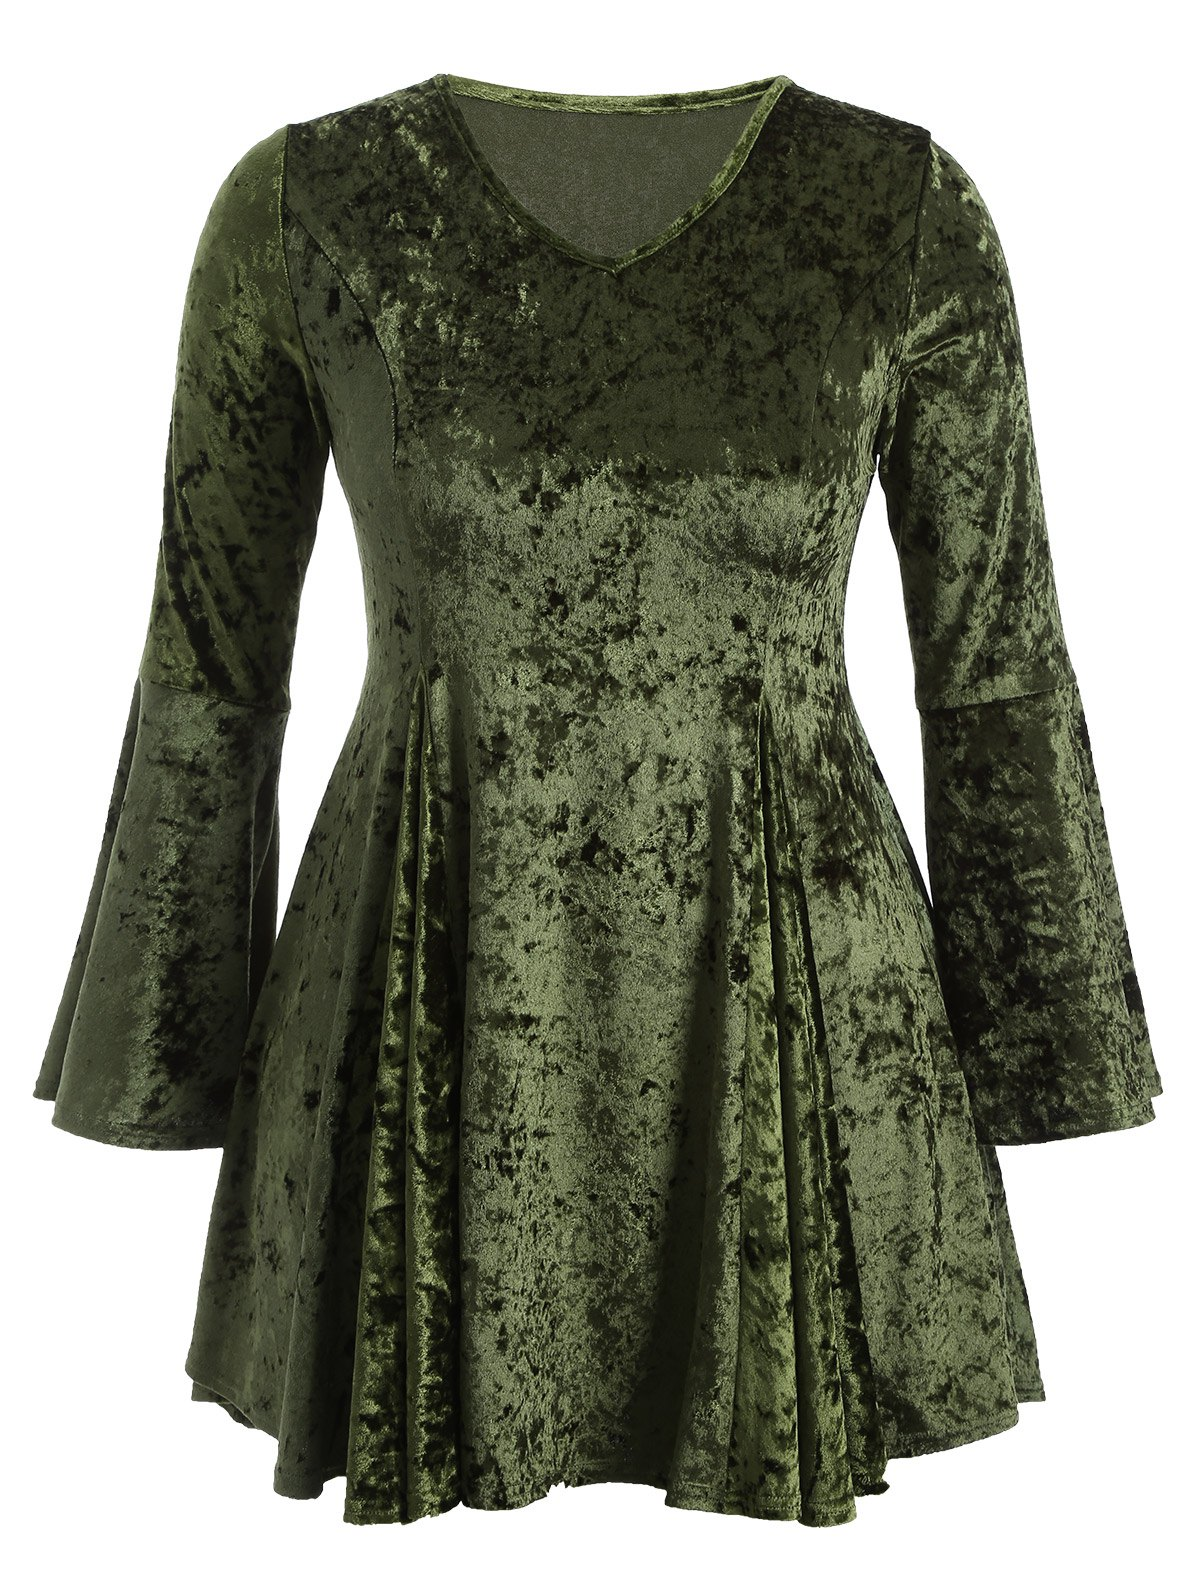 Bell Sleeve Velvet Skater Short Cocktail DressWOMEN<br><br>Size: 3XL; Color: GREEN; Style: Casual; Material: Cotton Blend; Silhouette: A-Line; Dresses Length: Mini; Neckline: V-Neck; Sleeve Length: Long Sleeves; Pattern Type: Solid; With Belt: No; Season: Fall; Weight: 0.370kg; Package Contents: 1 x Dress;